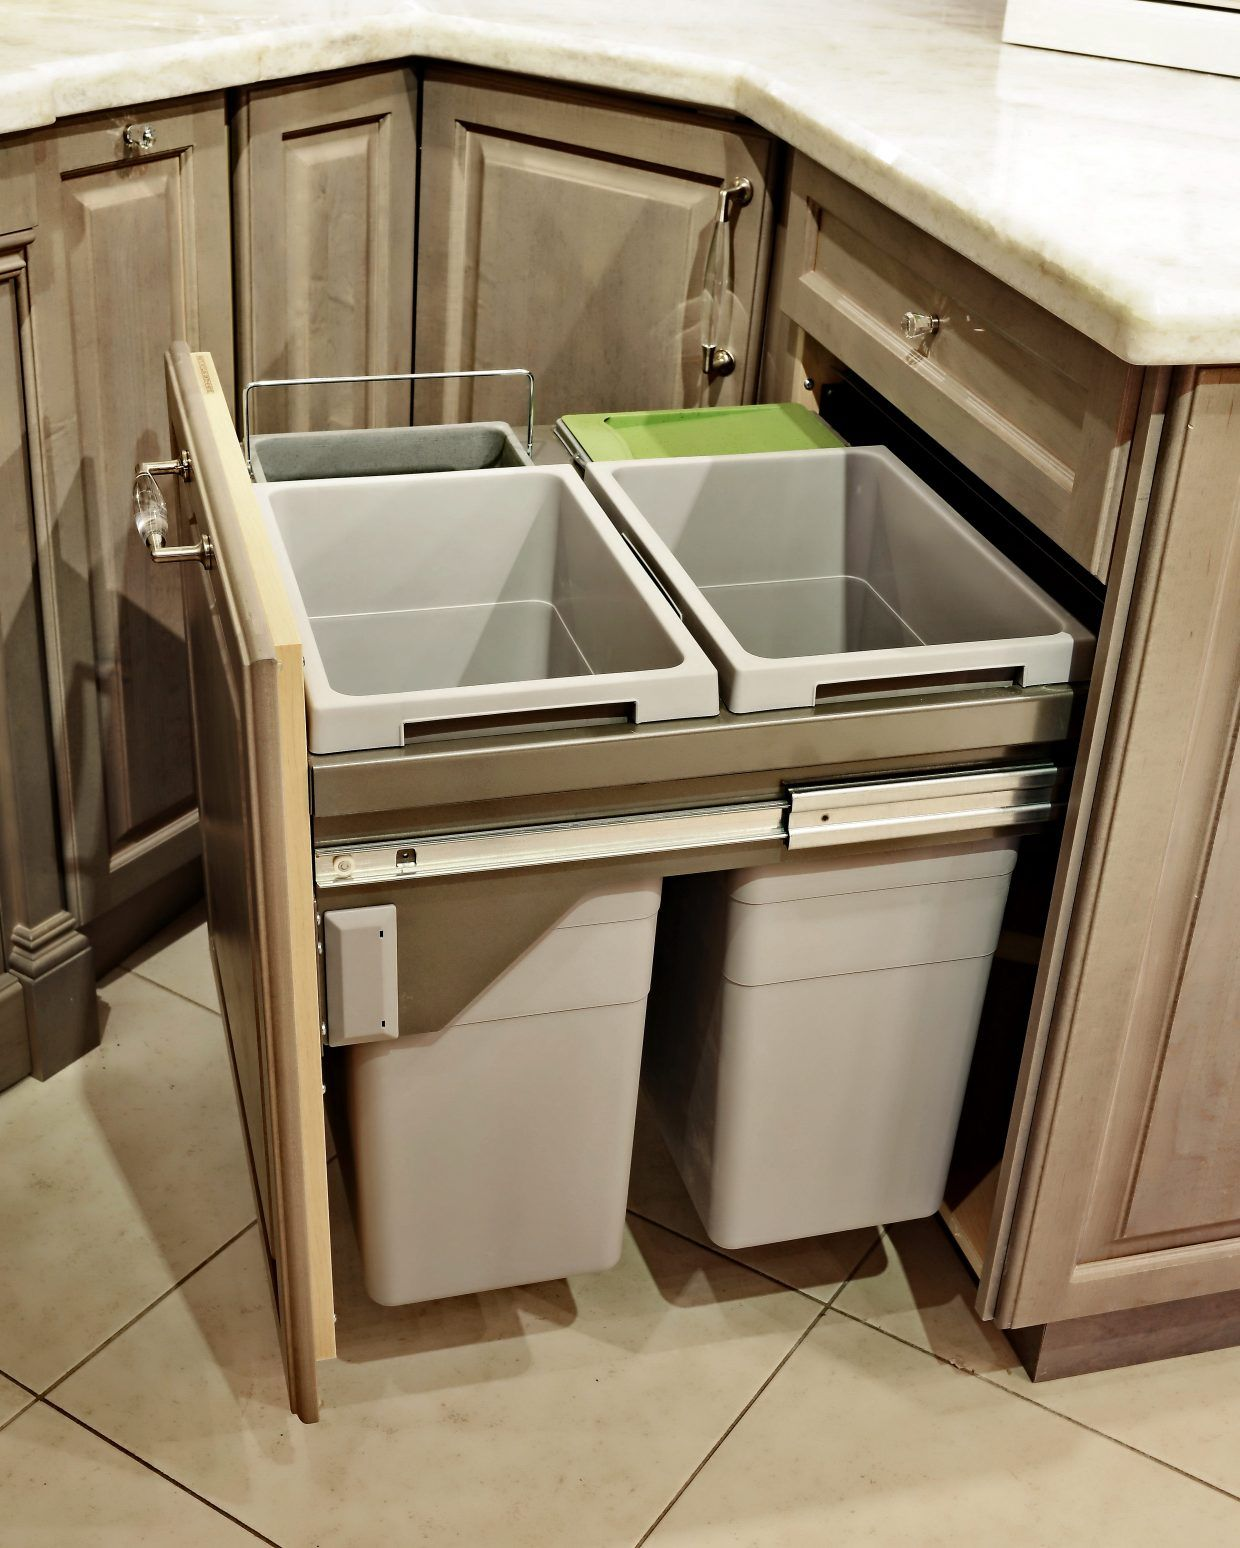 Cabinet Accessories Selba Kitchens Baths Is A Canadian Based Company Specializing In Custom Custom Kitchens Design Kitchen Design Companies Kitchen Design